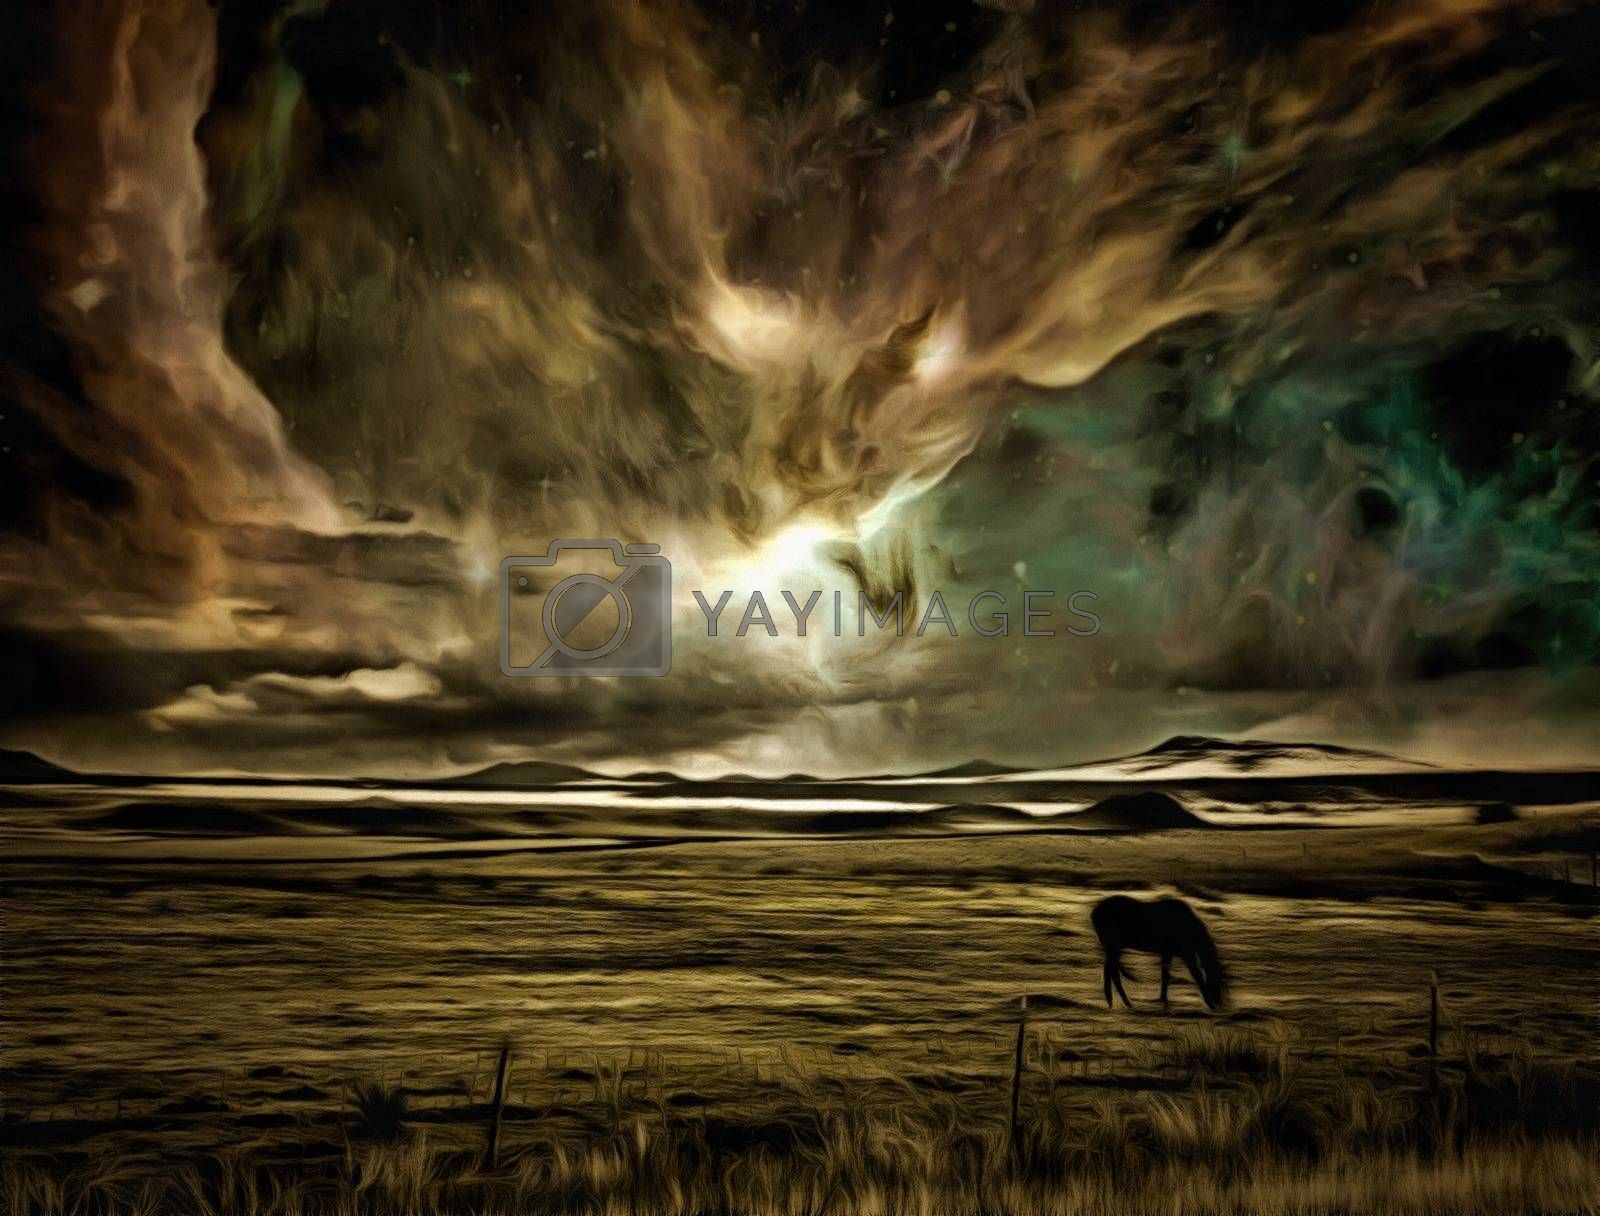 Surreal digital art. Horse grazes in the field. Vivid colorful sky with stars and galaxies.